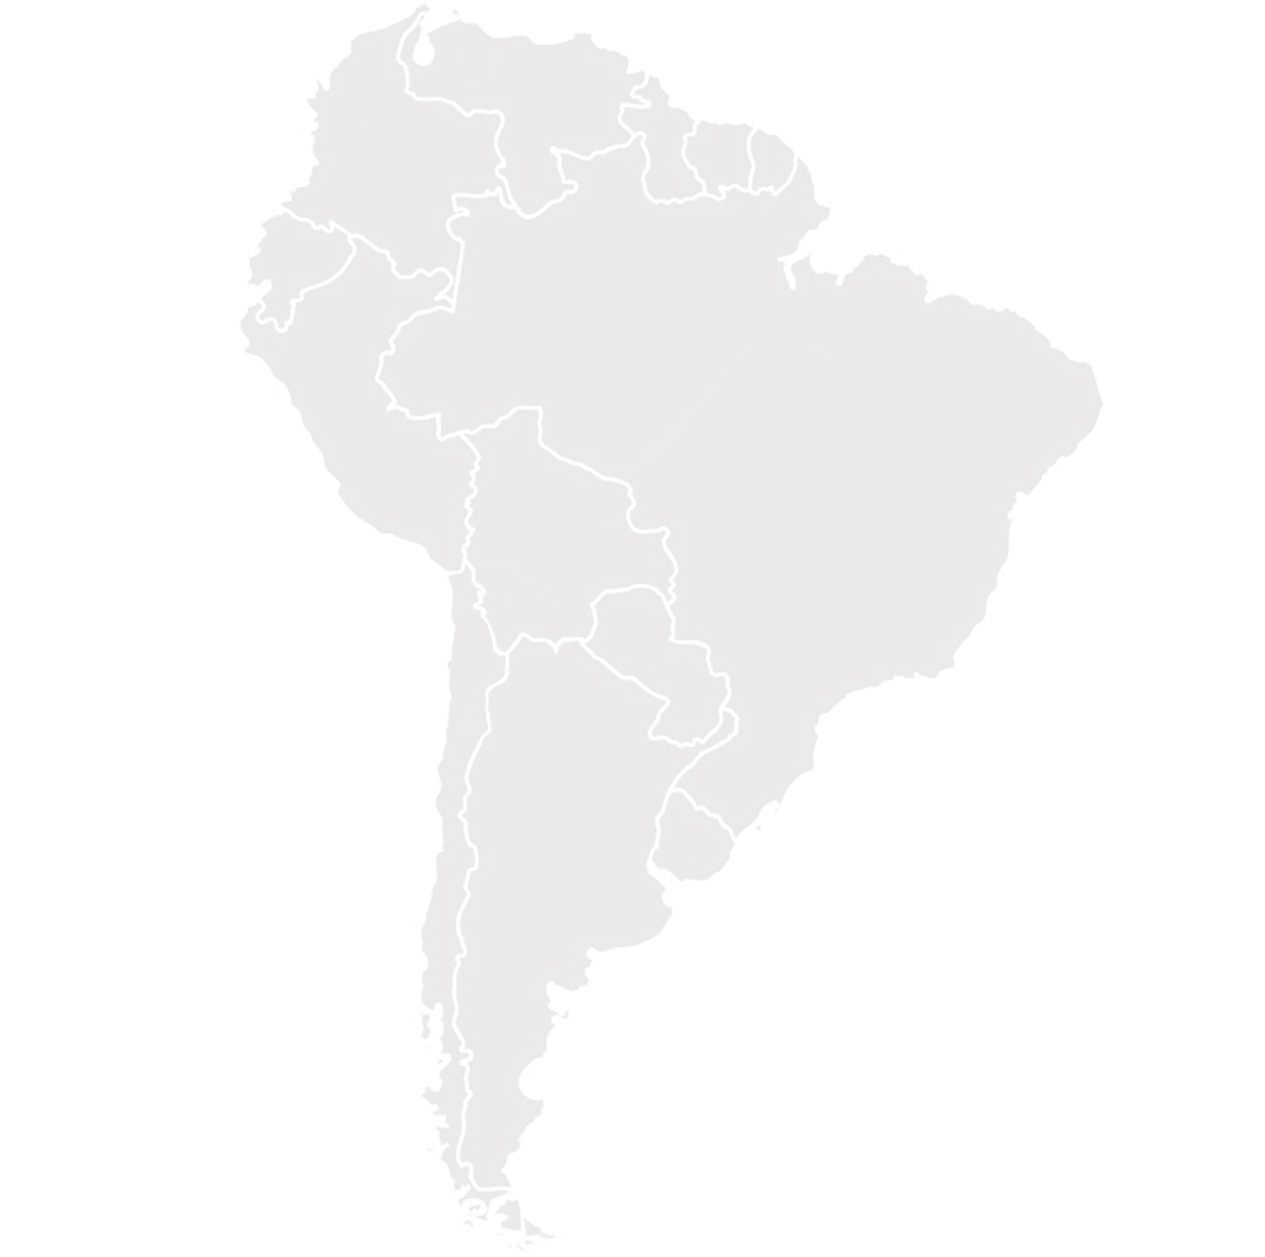 Gray map of South America